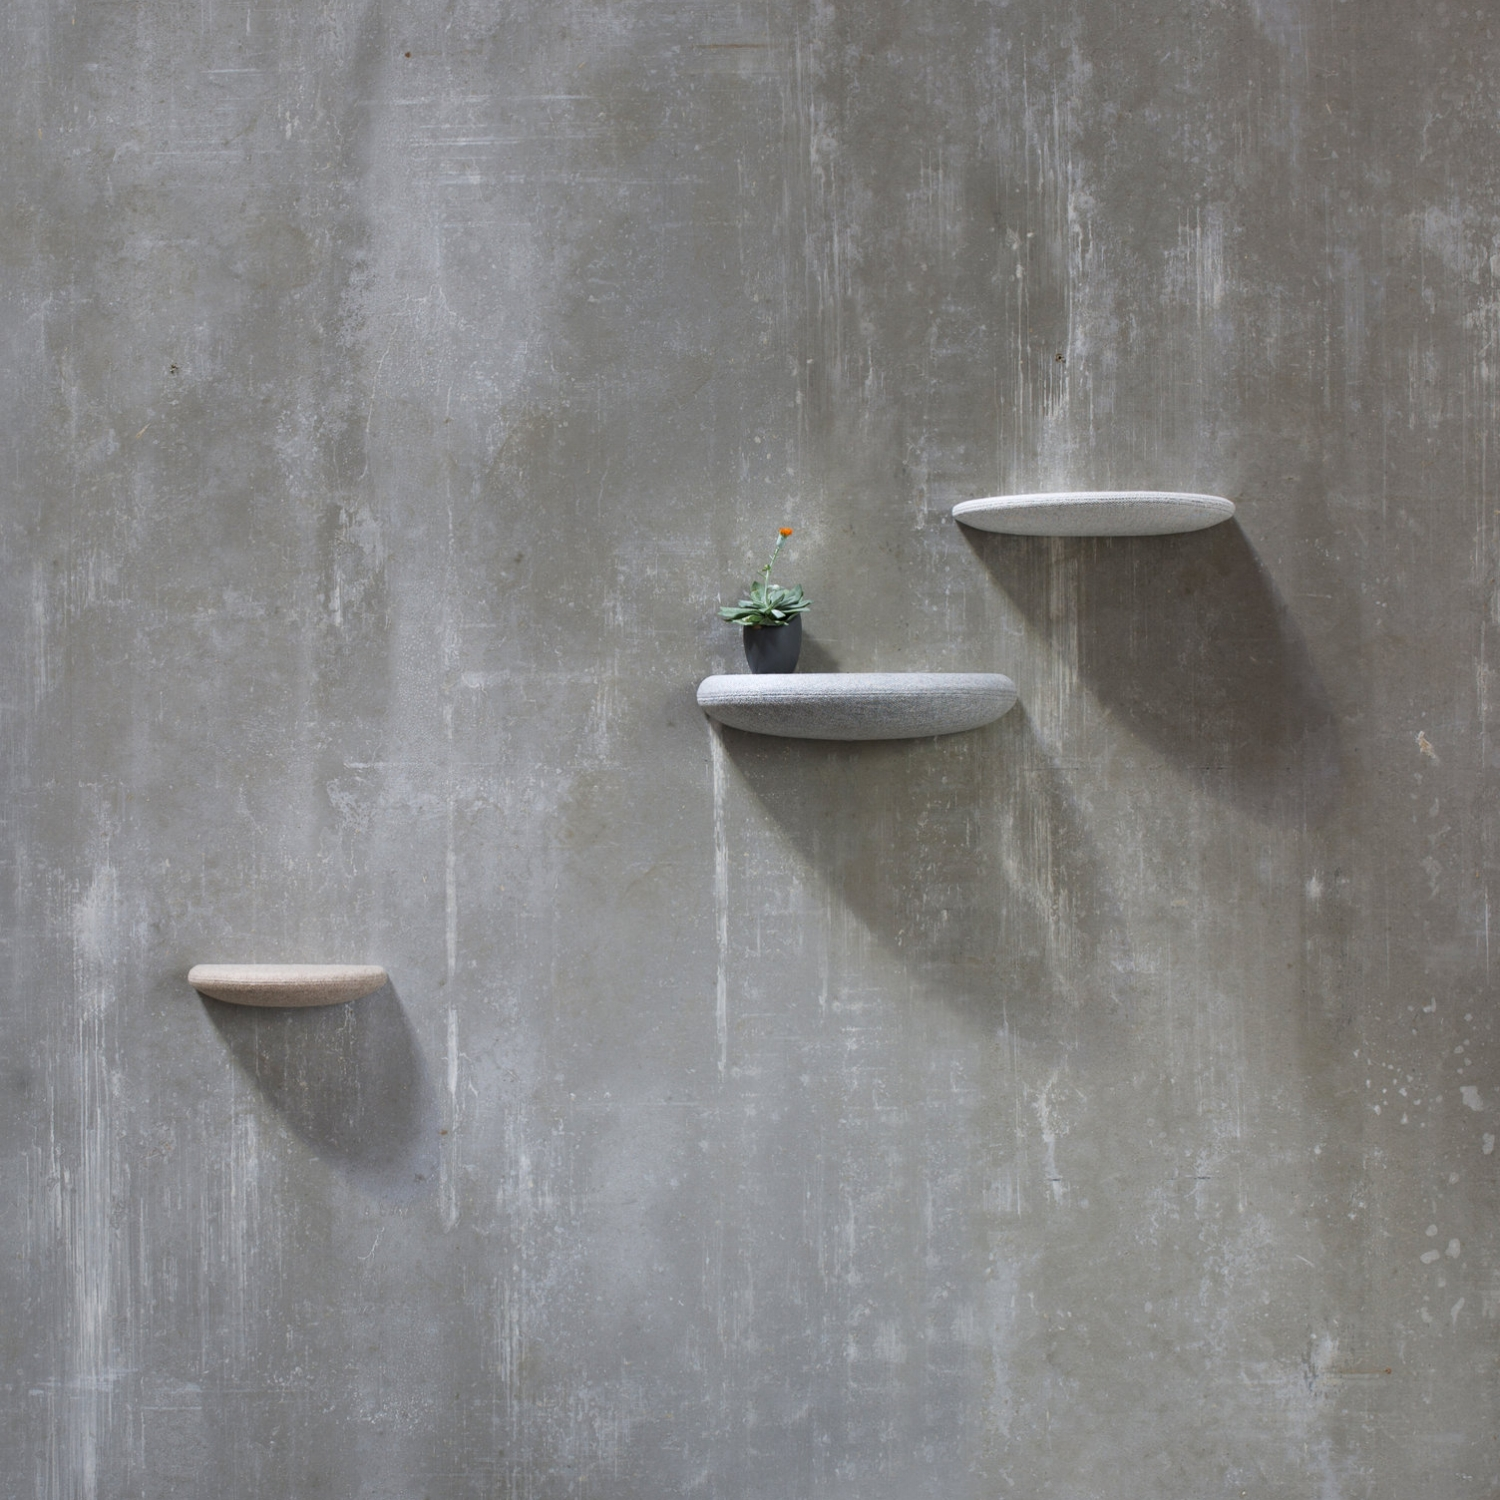 STONES (wall display)